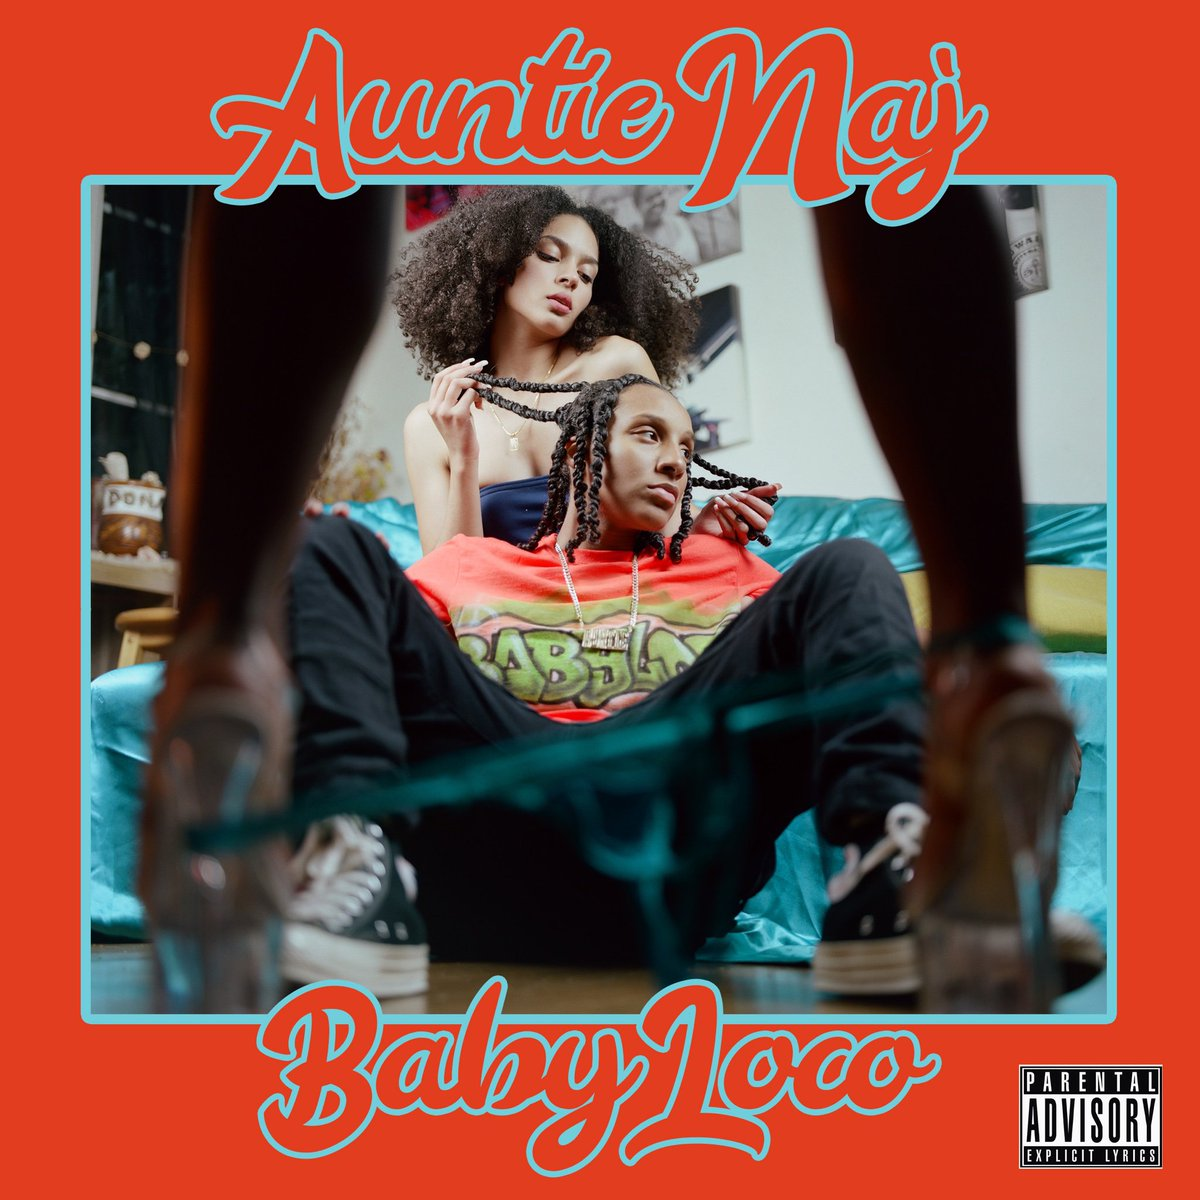 This Friday my crazy ass is dropping my EP Baby Loco 😜. Cover shot by @KumoShai.